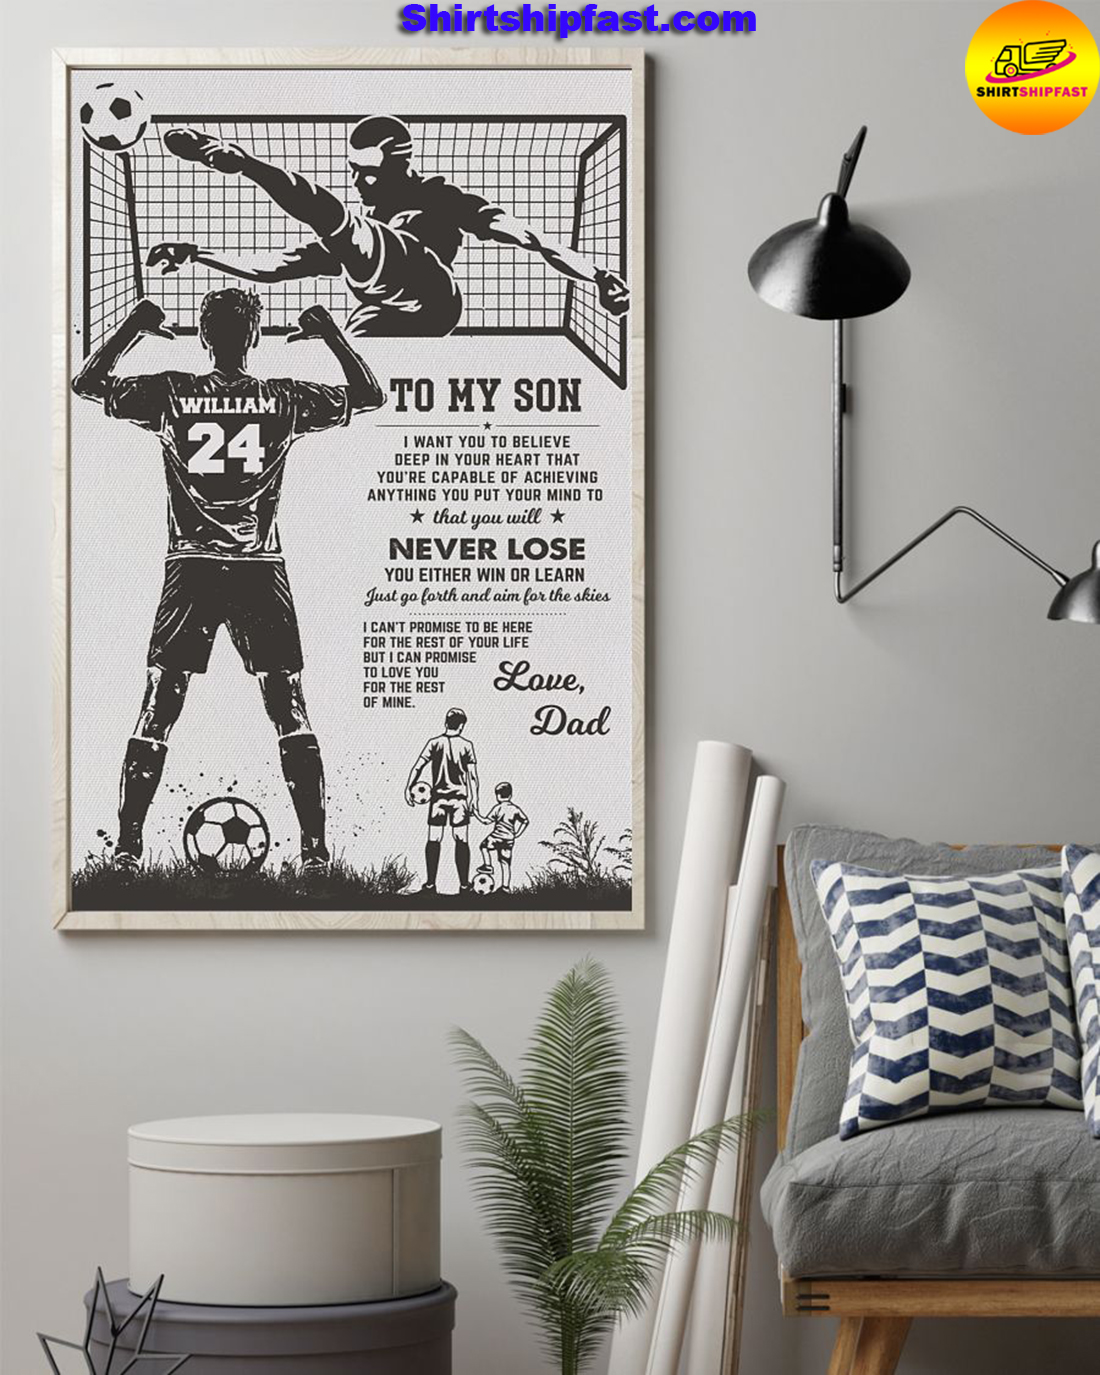 Soccer To my son I want you to believe deep in your heart custom name and number poster